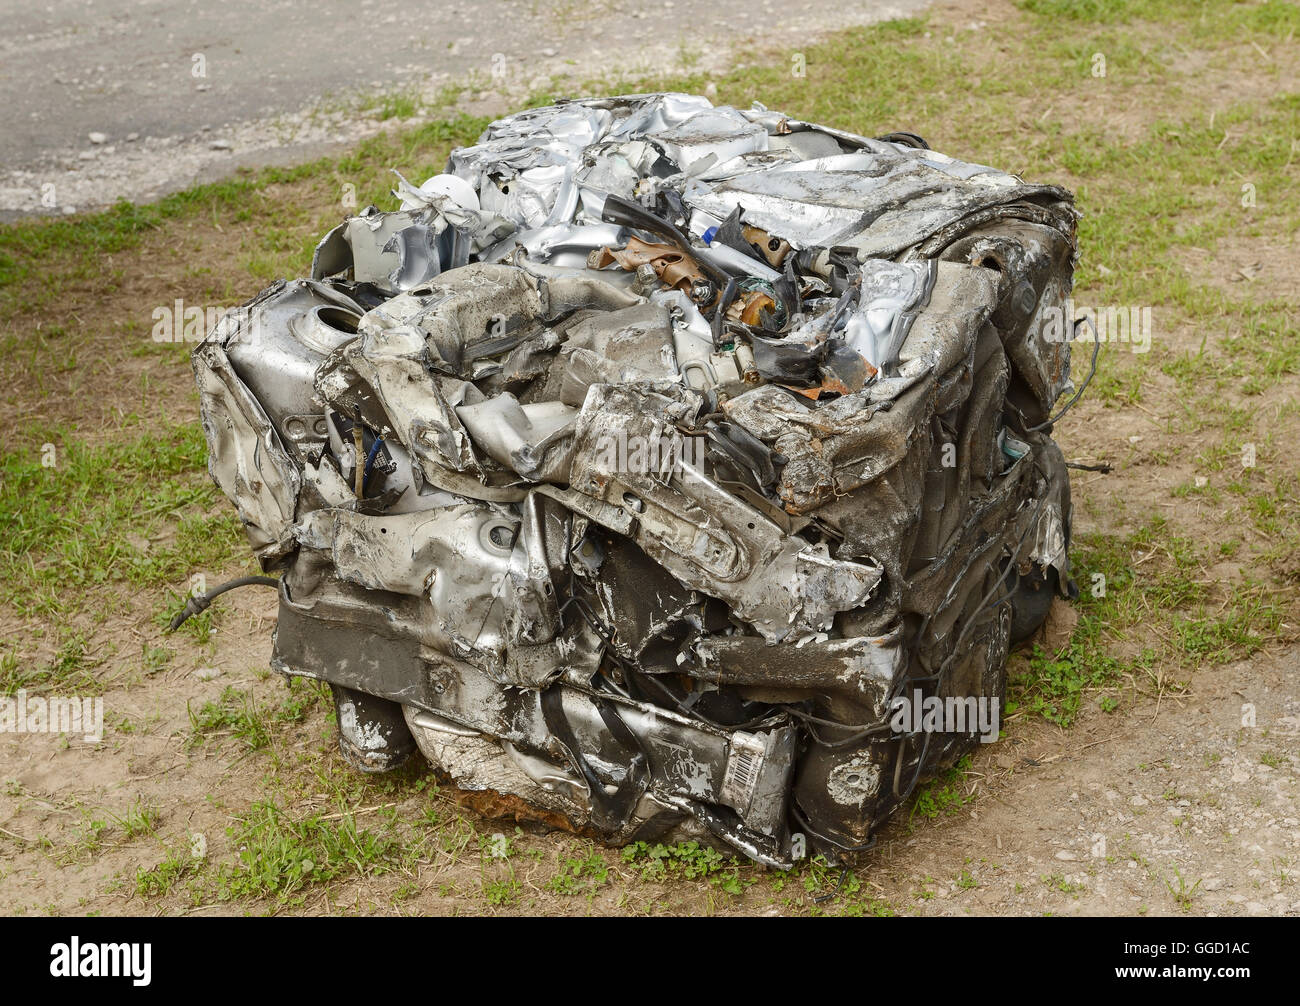 A square of metal formed from a car that has been put through a car crusher. - Stock Image